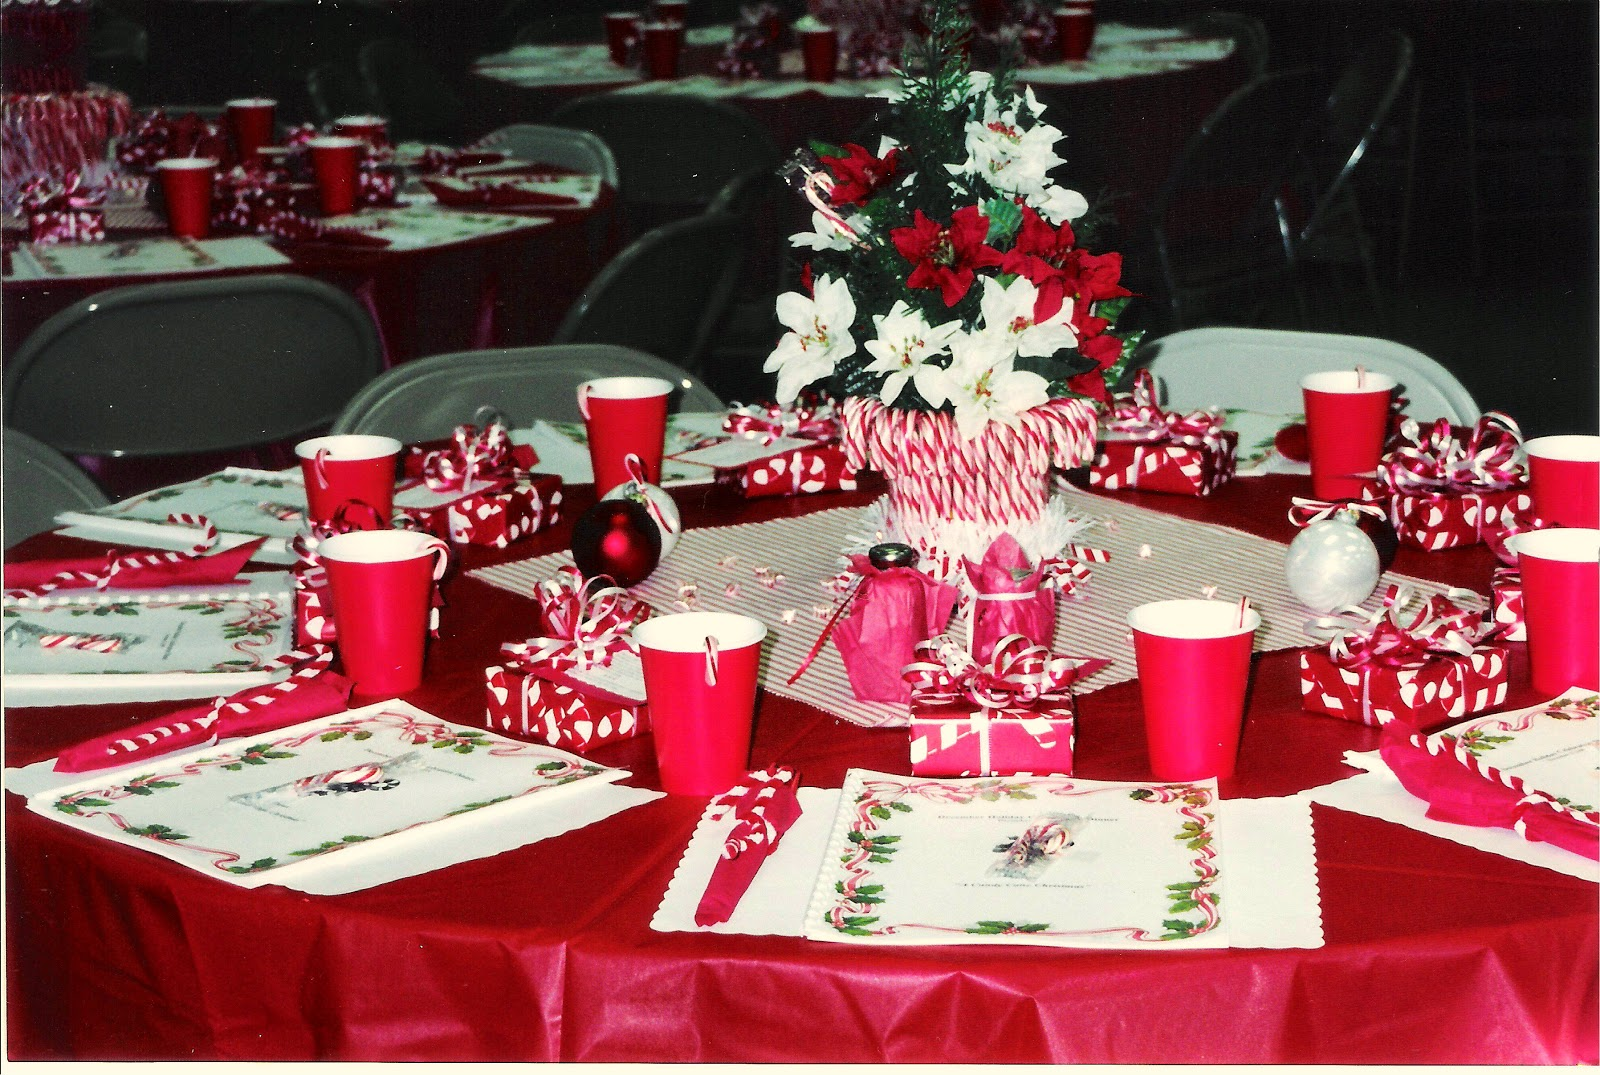 i purchased red stripped pillow ticking fabric from calico corners for the center of the tables to visually help carry out the candy cane theme